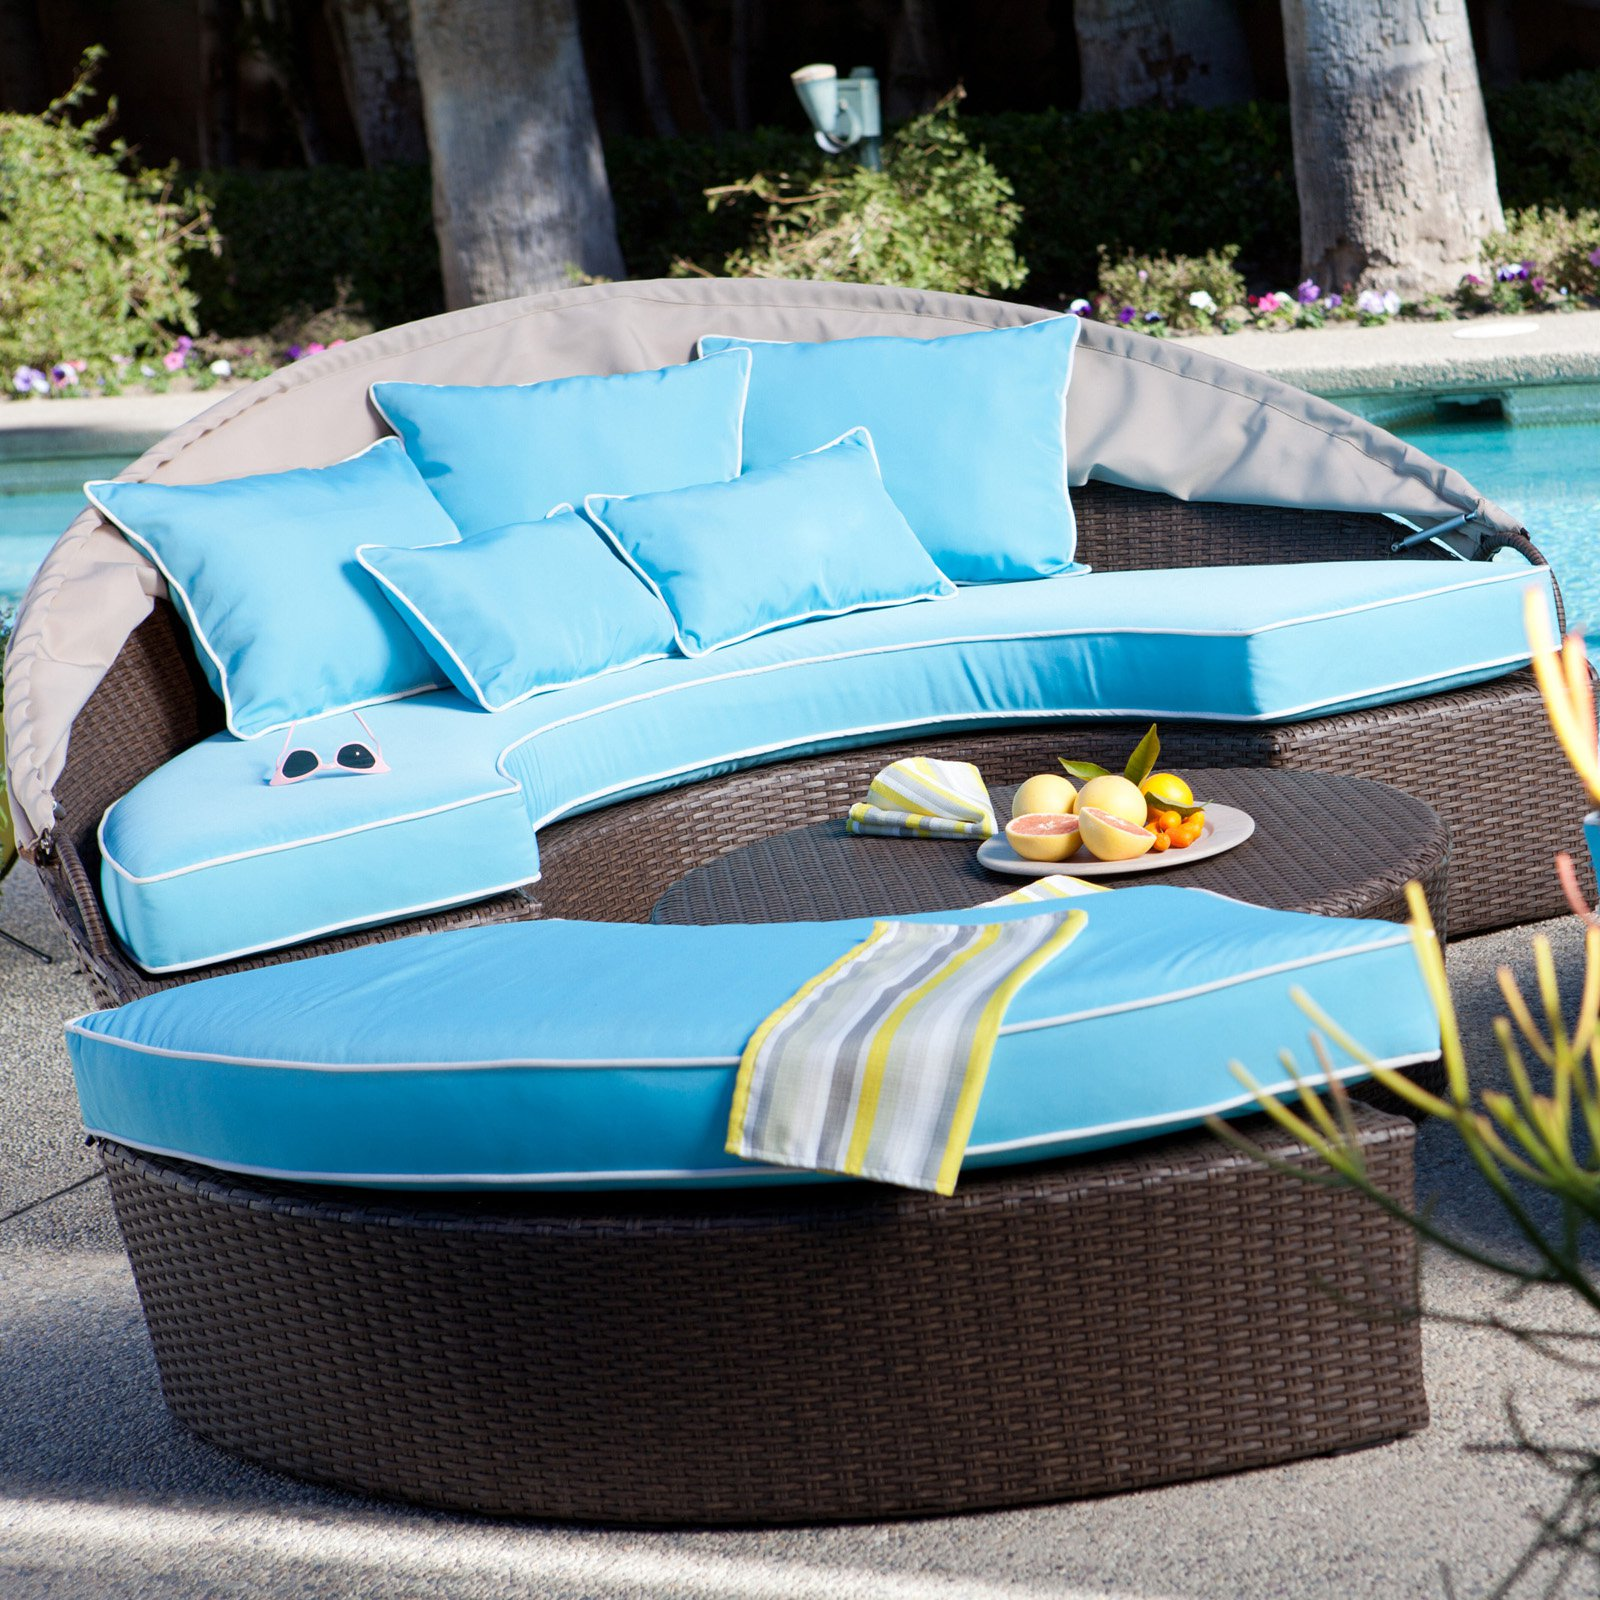 Belham Living Rendezvous All Weather Wicker Sectional Daybed   Walmart.com